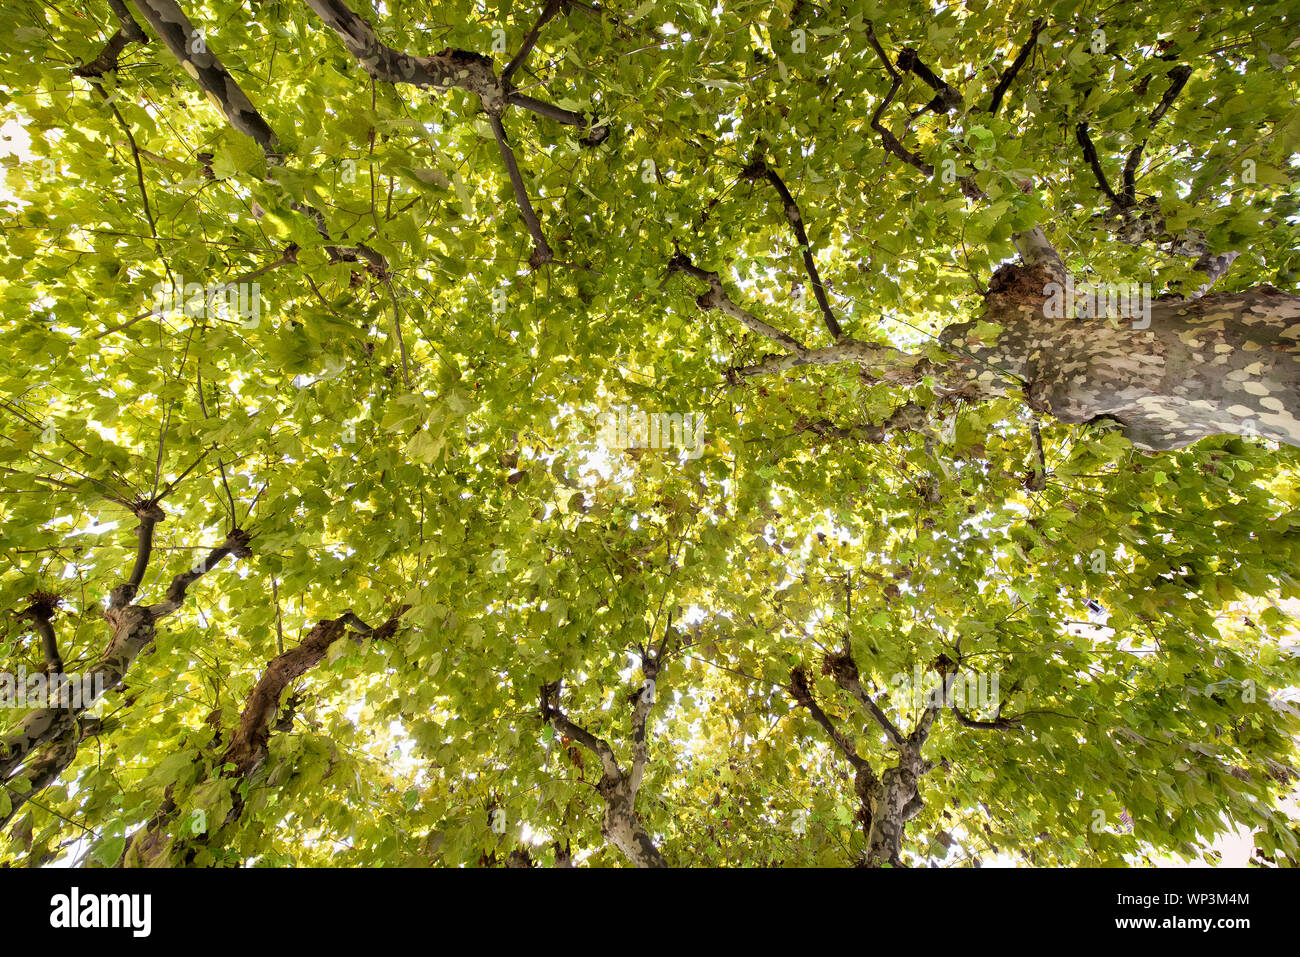 Looking up into the leafy green tree canopy backlit by the summer sun in a full frame background view Stock Photo